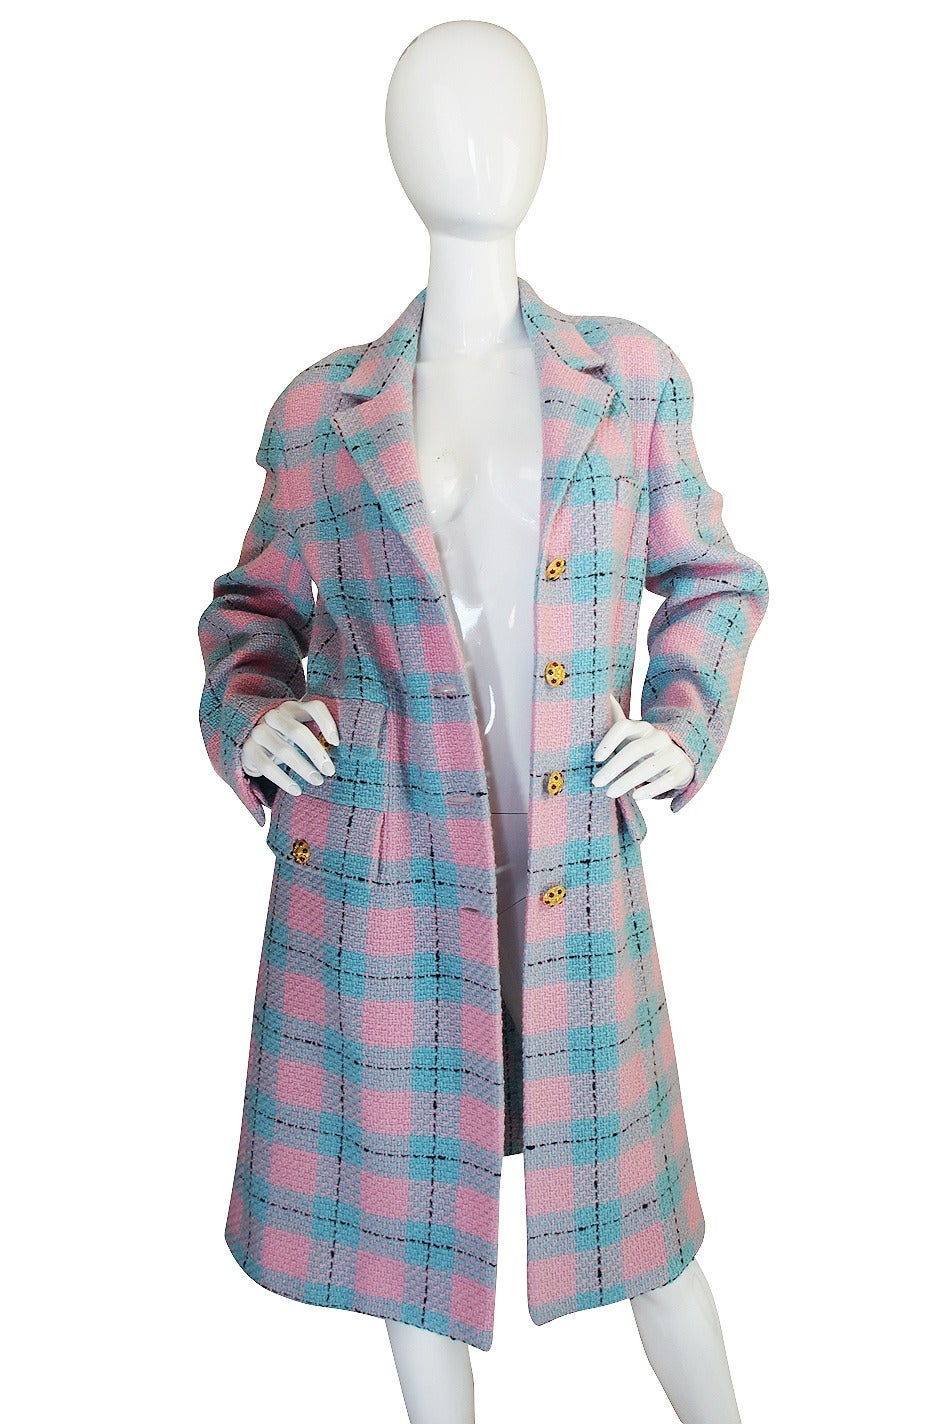 96A Pastel Runway Chanel Coat w Cabochon Buttons 4